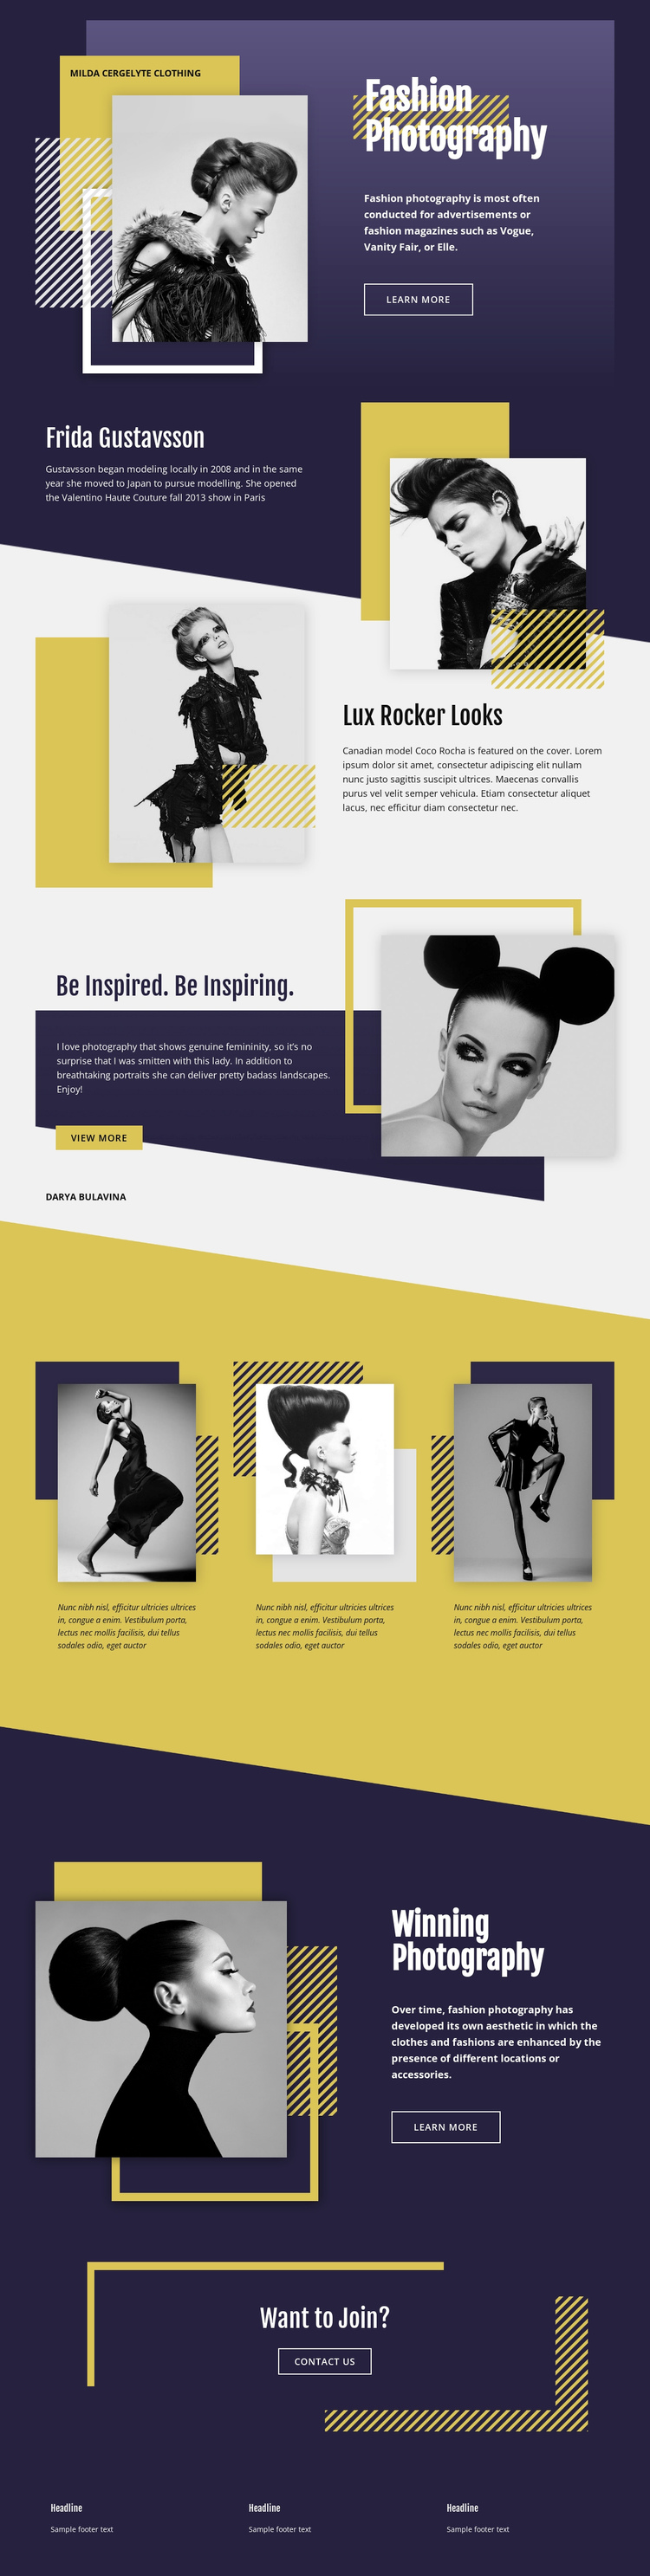 Fashion Photography Overlapping Website Builder Software